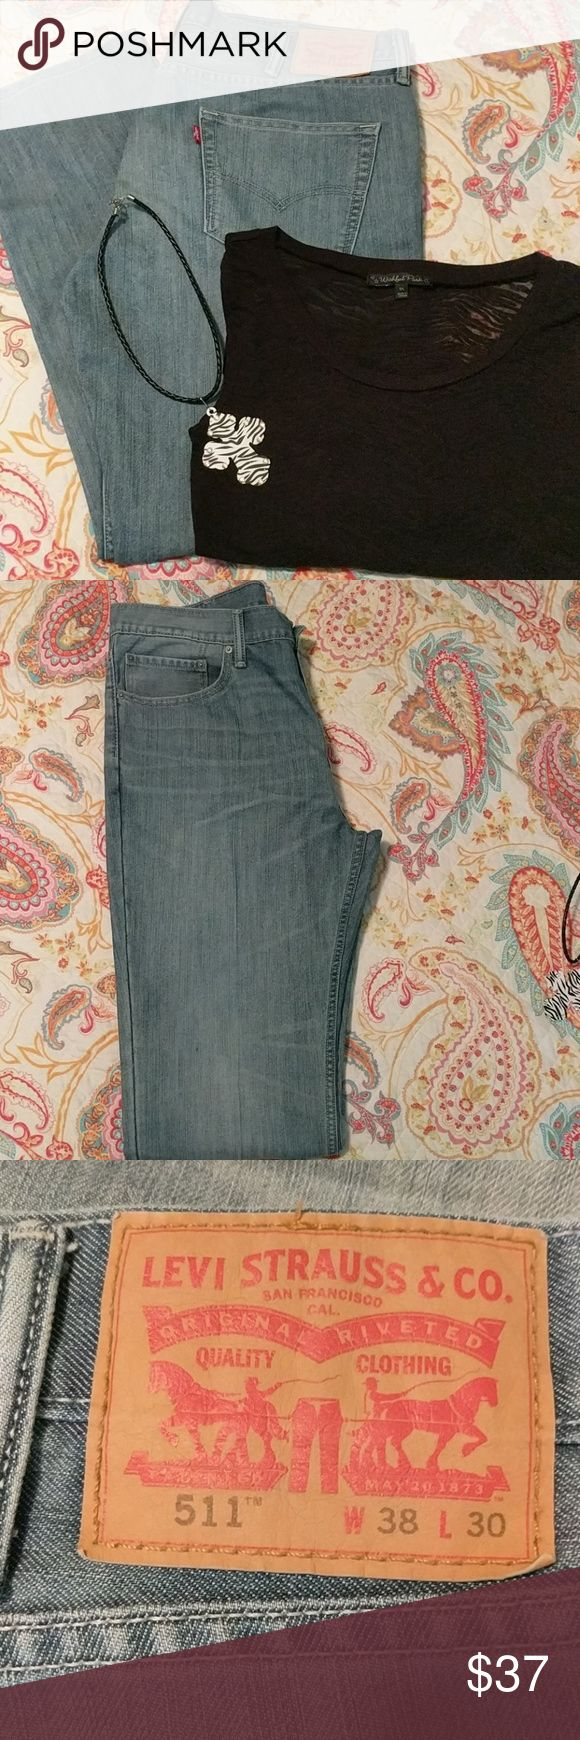 Levi jeans #511 Light wash denim jeans, very gently used. No scuffing at the seams, looks new! Levi's Jeans